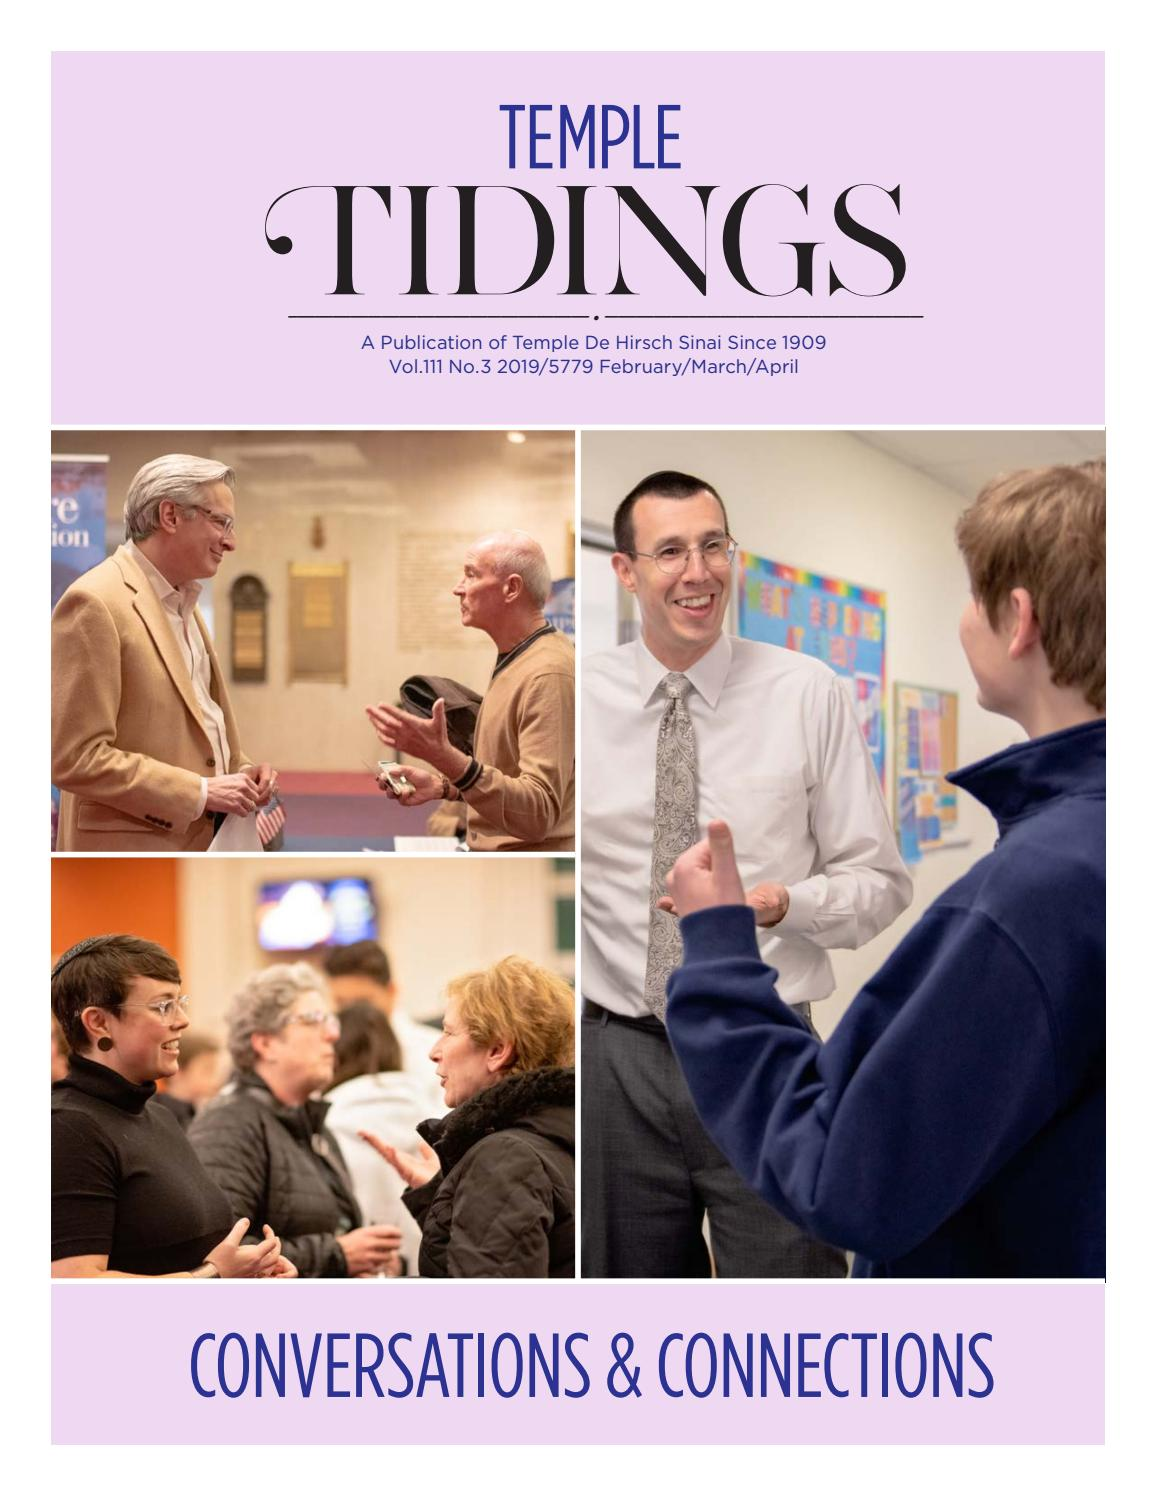 Temple Tidings Vol 111 No 3 2019/5779 February/March/April by Temple